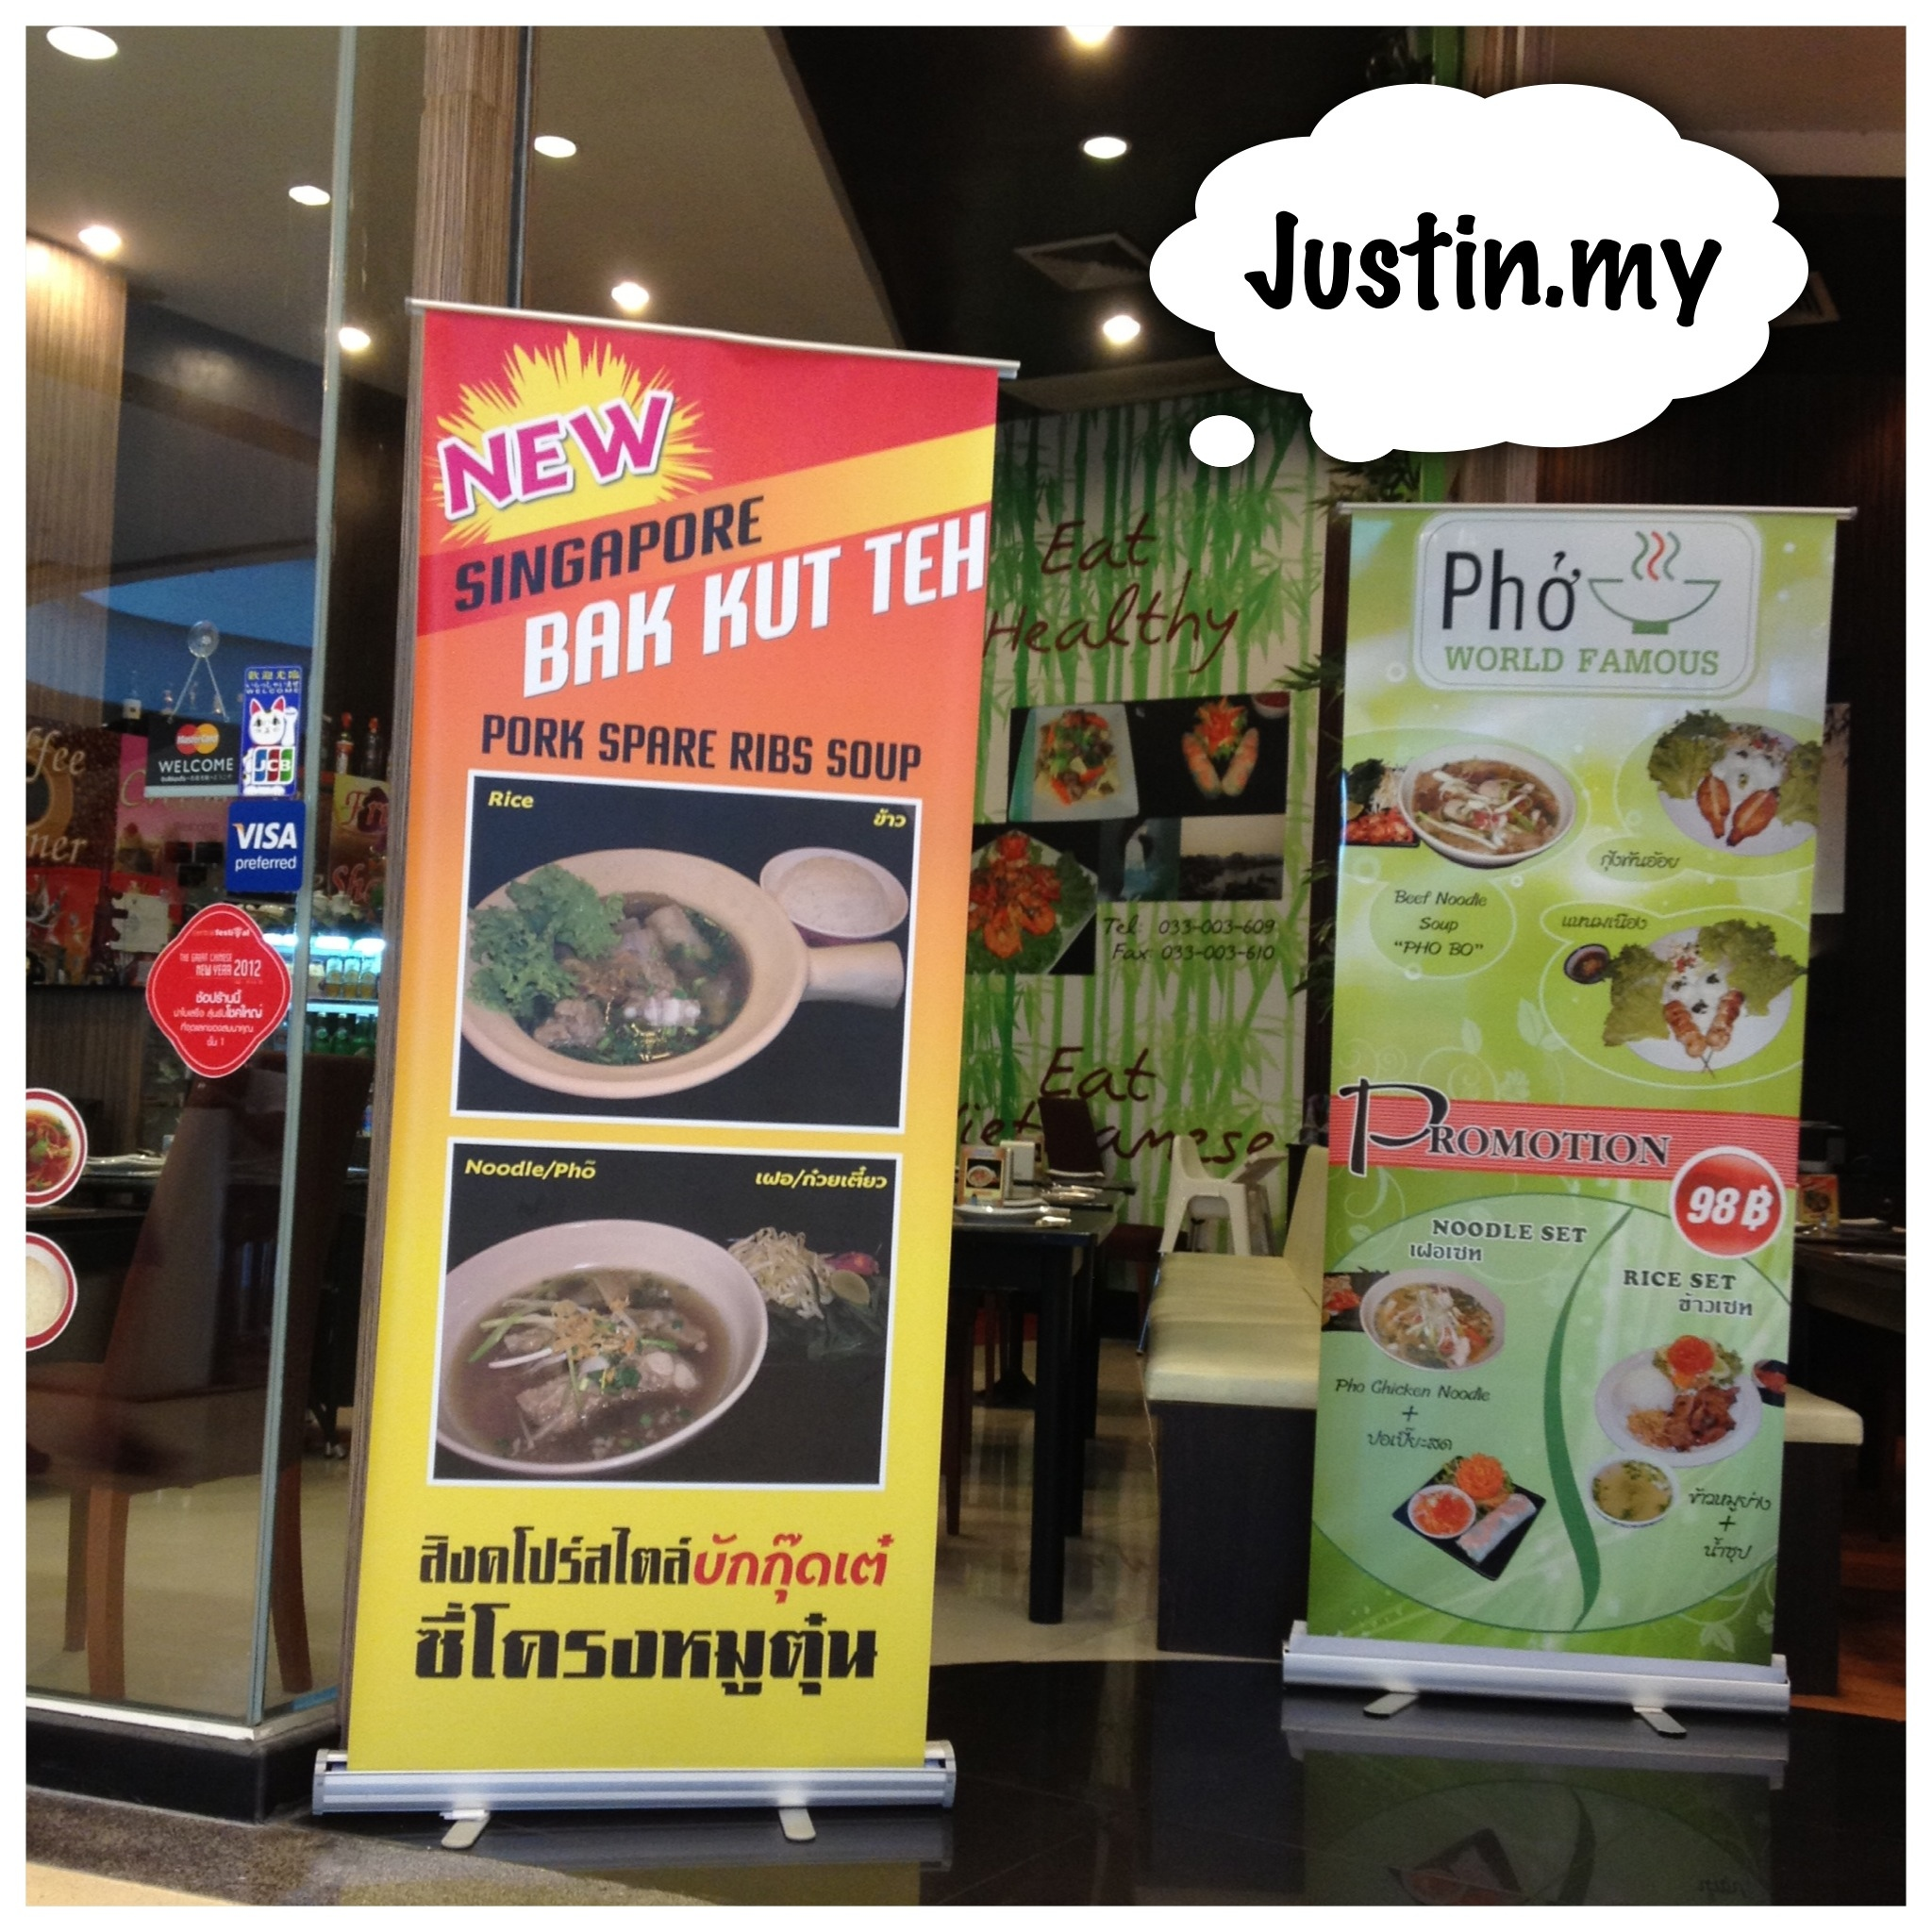 Singapore Bak Kut Teh found in Thailand, but where is the Malaysia one ?